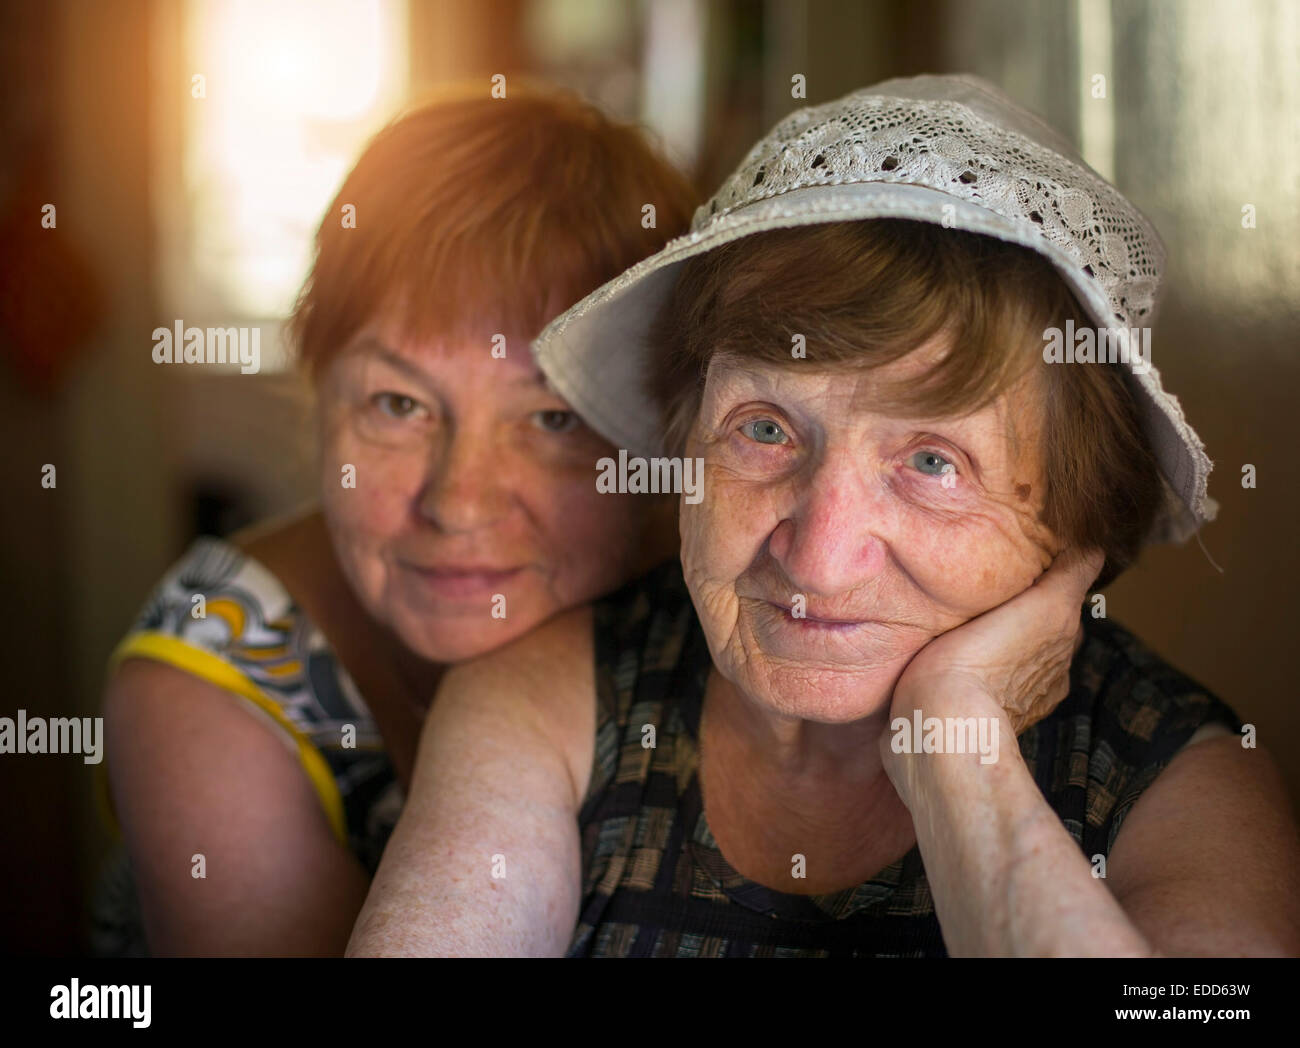 Portrait of old woman and hugging her daughter in the background, in the house. - Stock Image